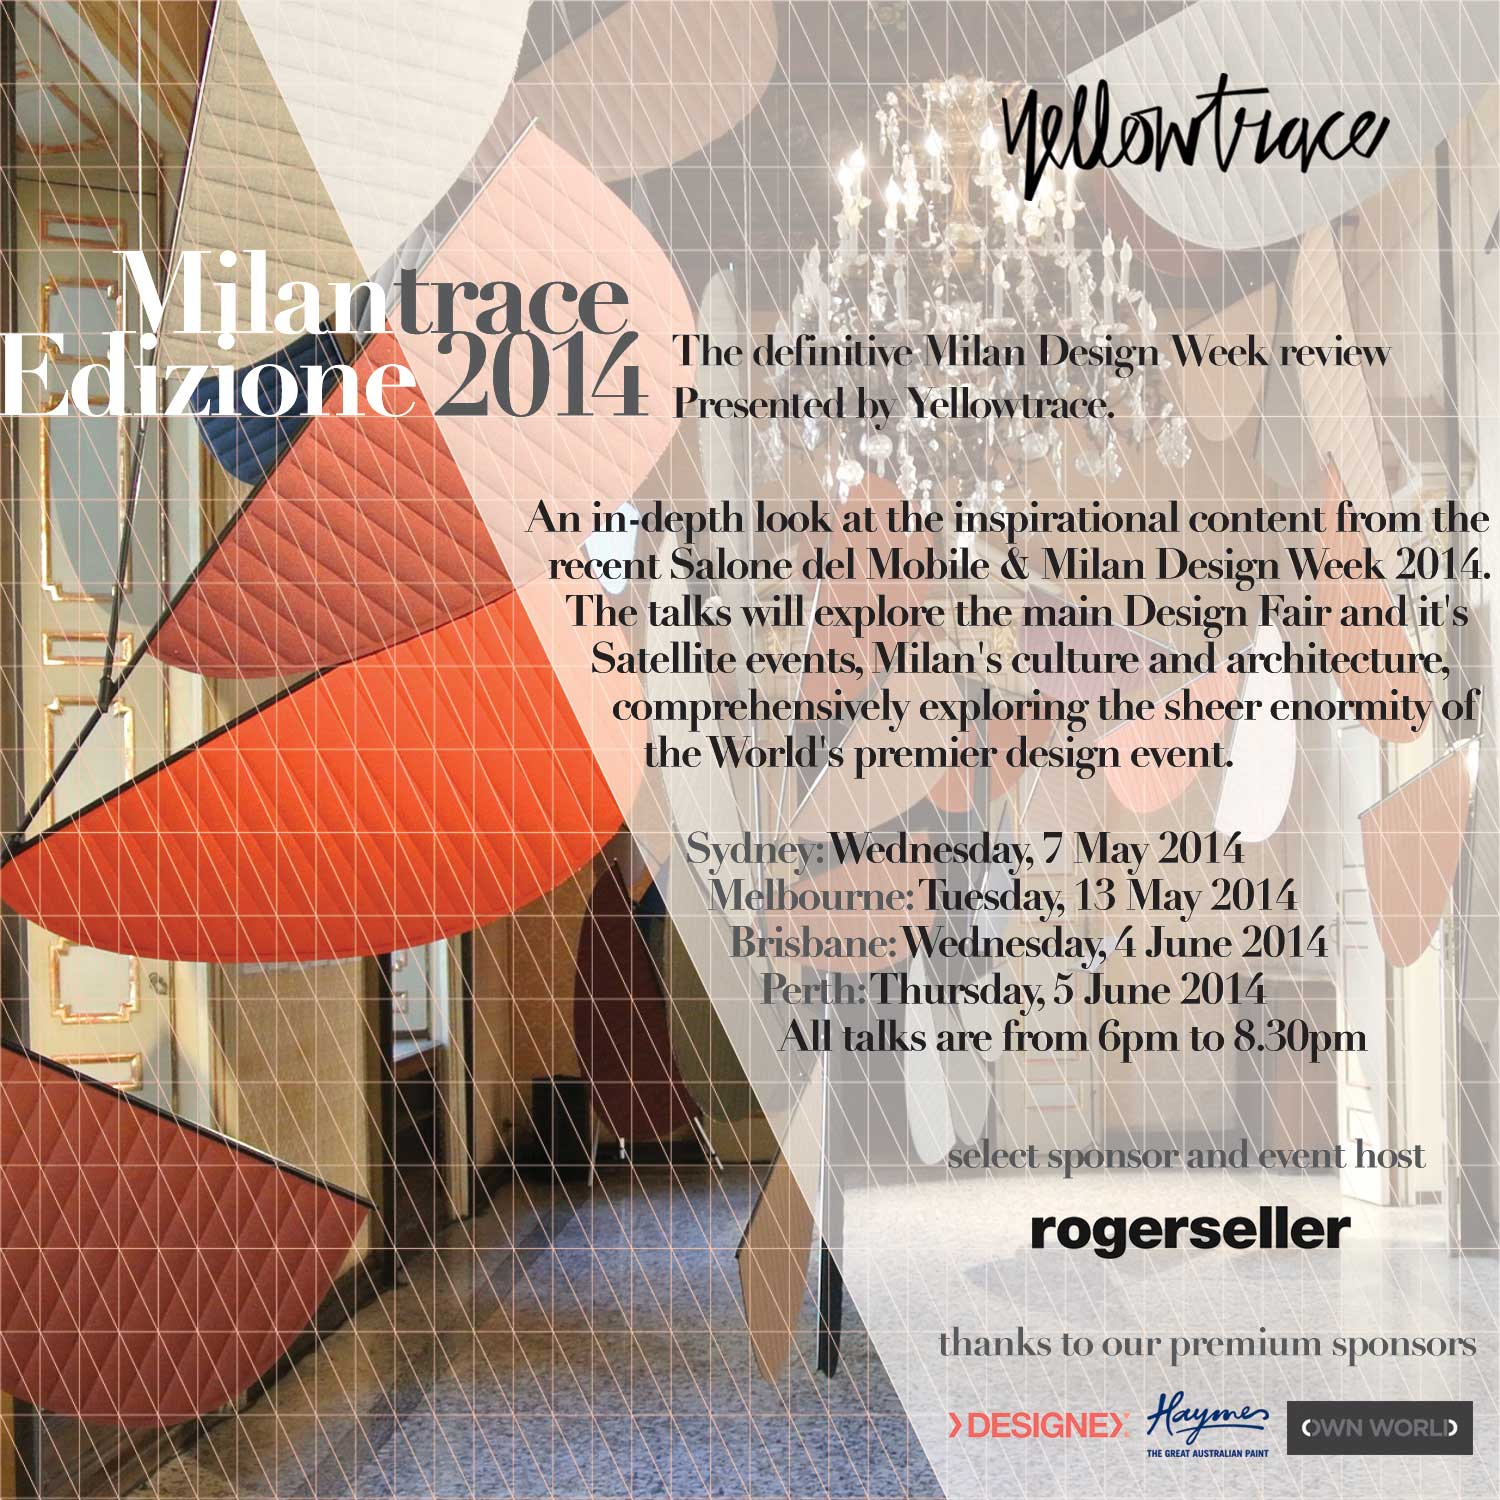 MILANTRACE, Edizione 2014 // Invitation to the Milan Design Week Talk Series, Presented by Yellowtrace.